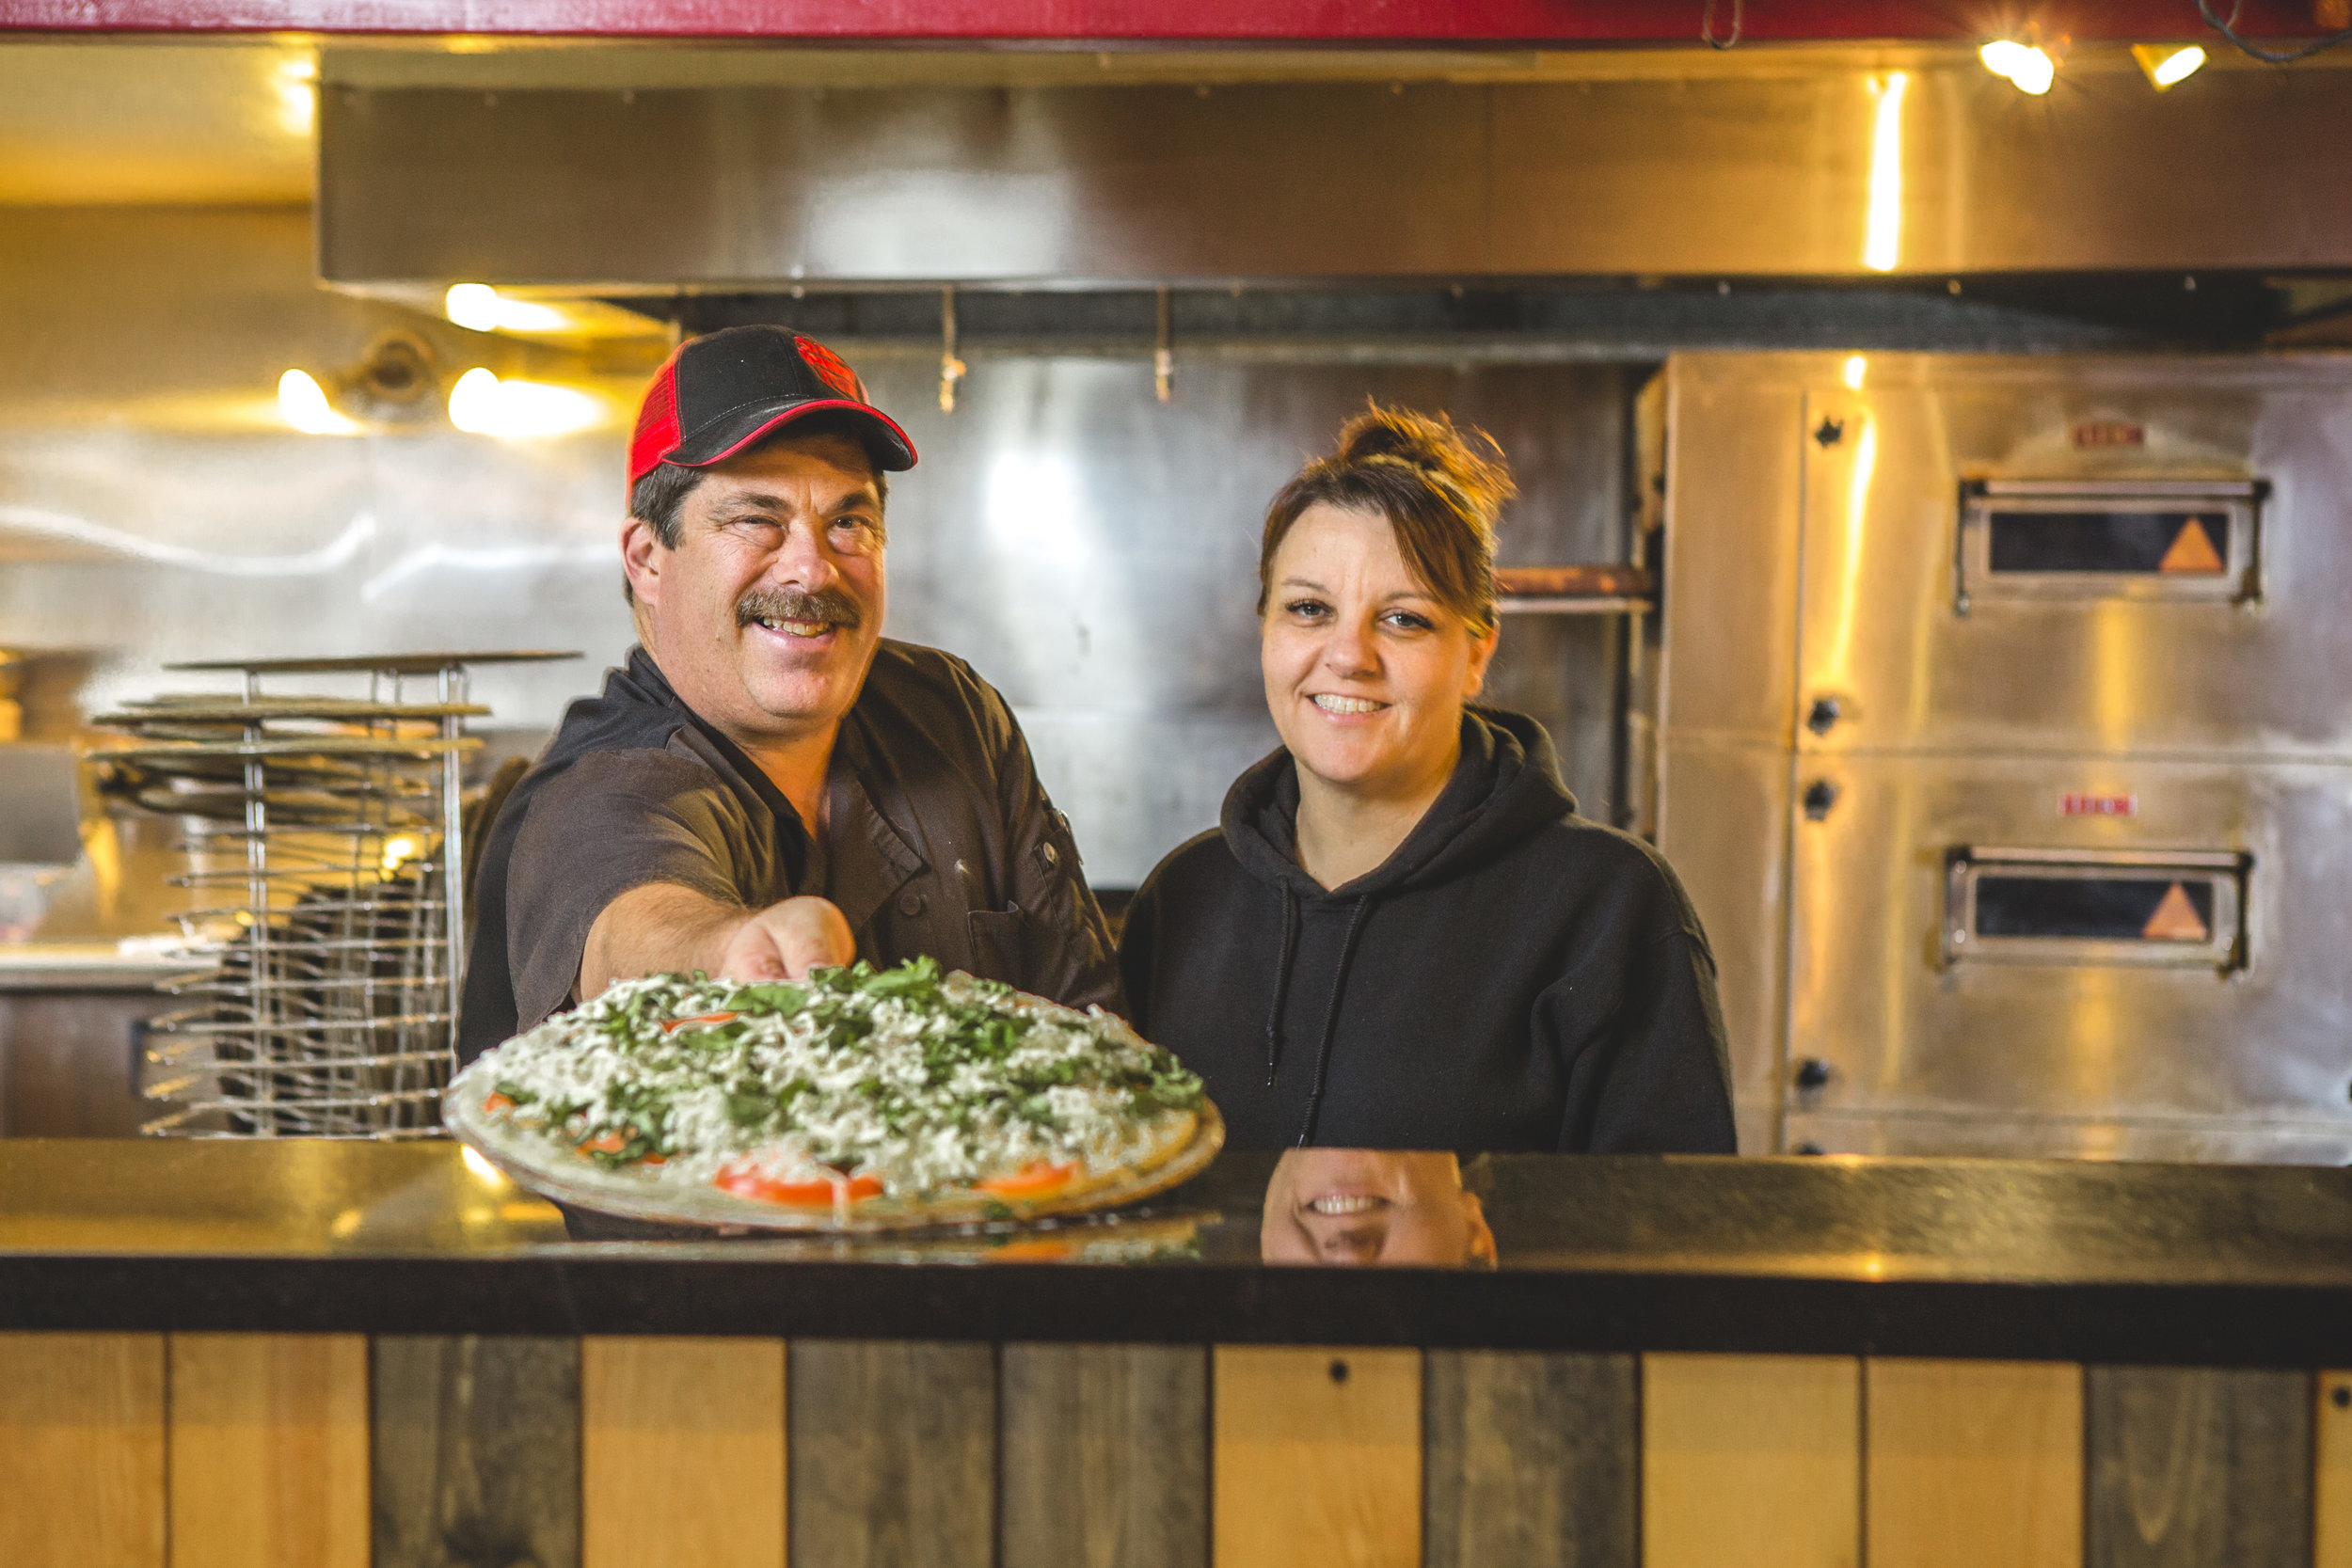 Owners Matt and Stephanie Dunken hand a pizza over the counter at Slam Dunk Pizza in Ukiah, CA.